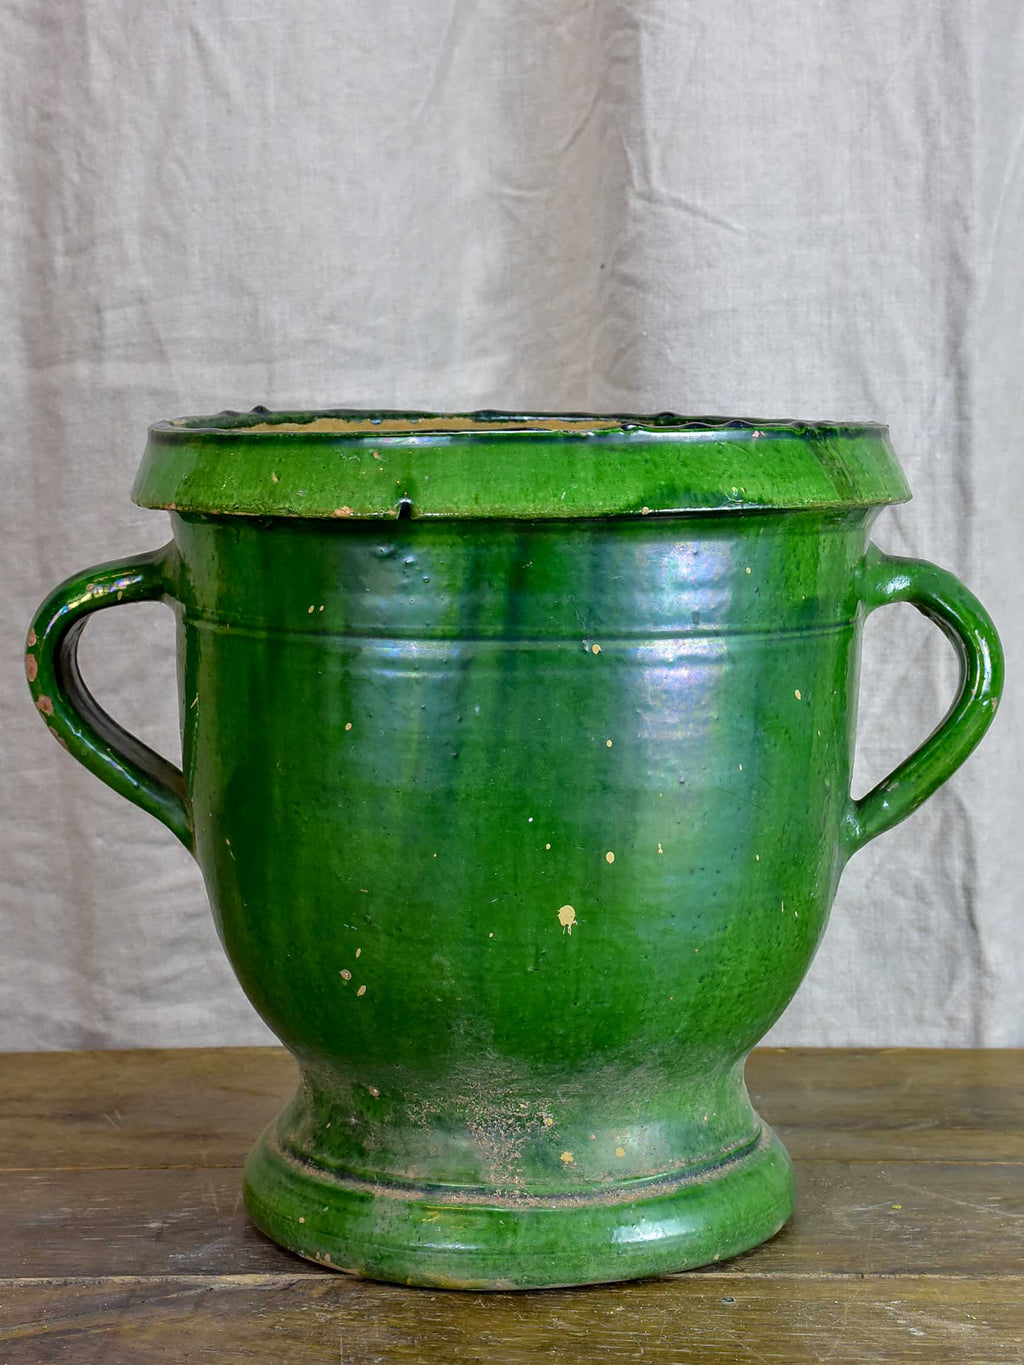 Antique French garden planter with green glaze - Castelnaudary